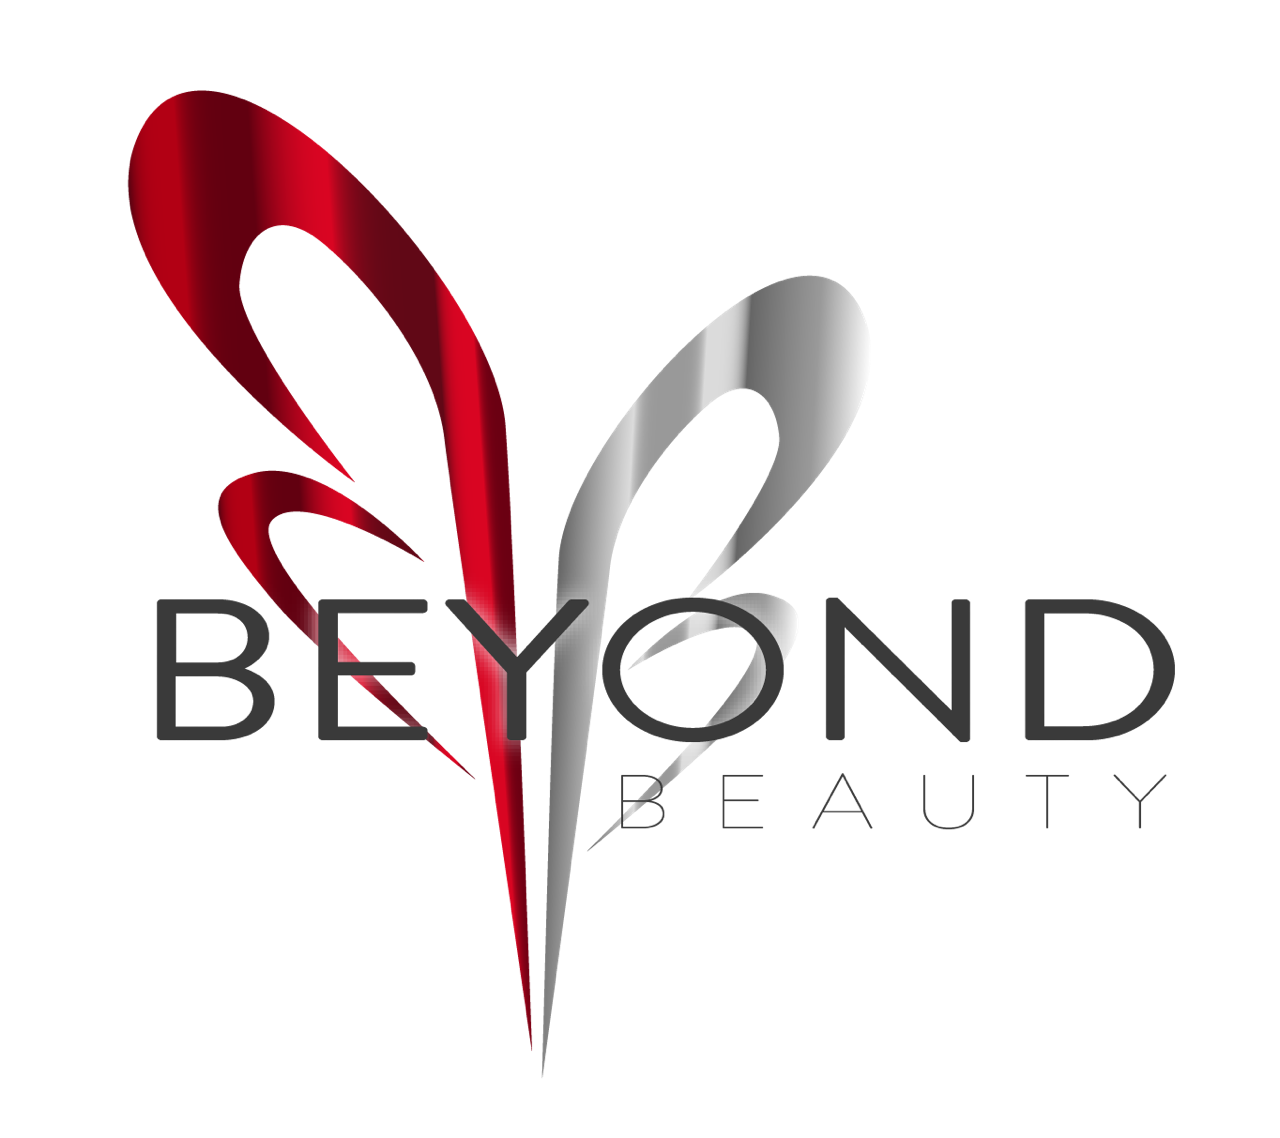 Beyond Beauty